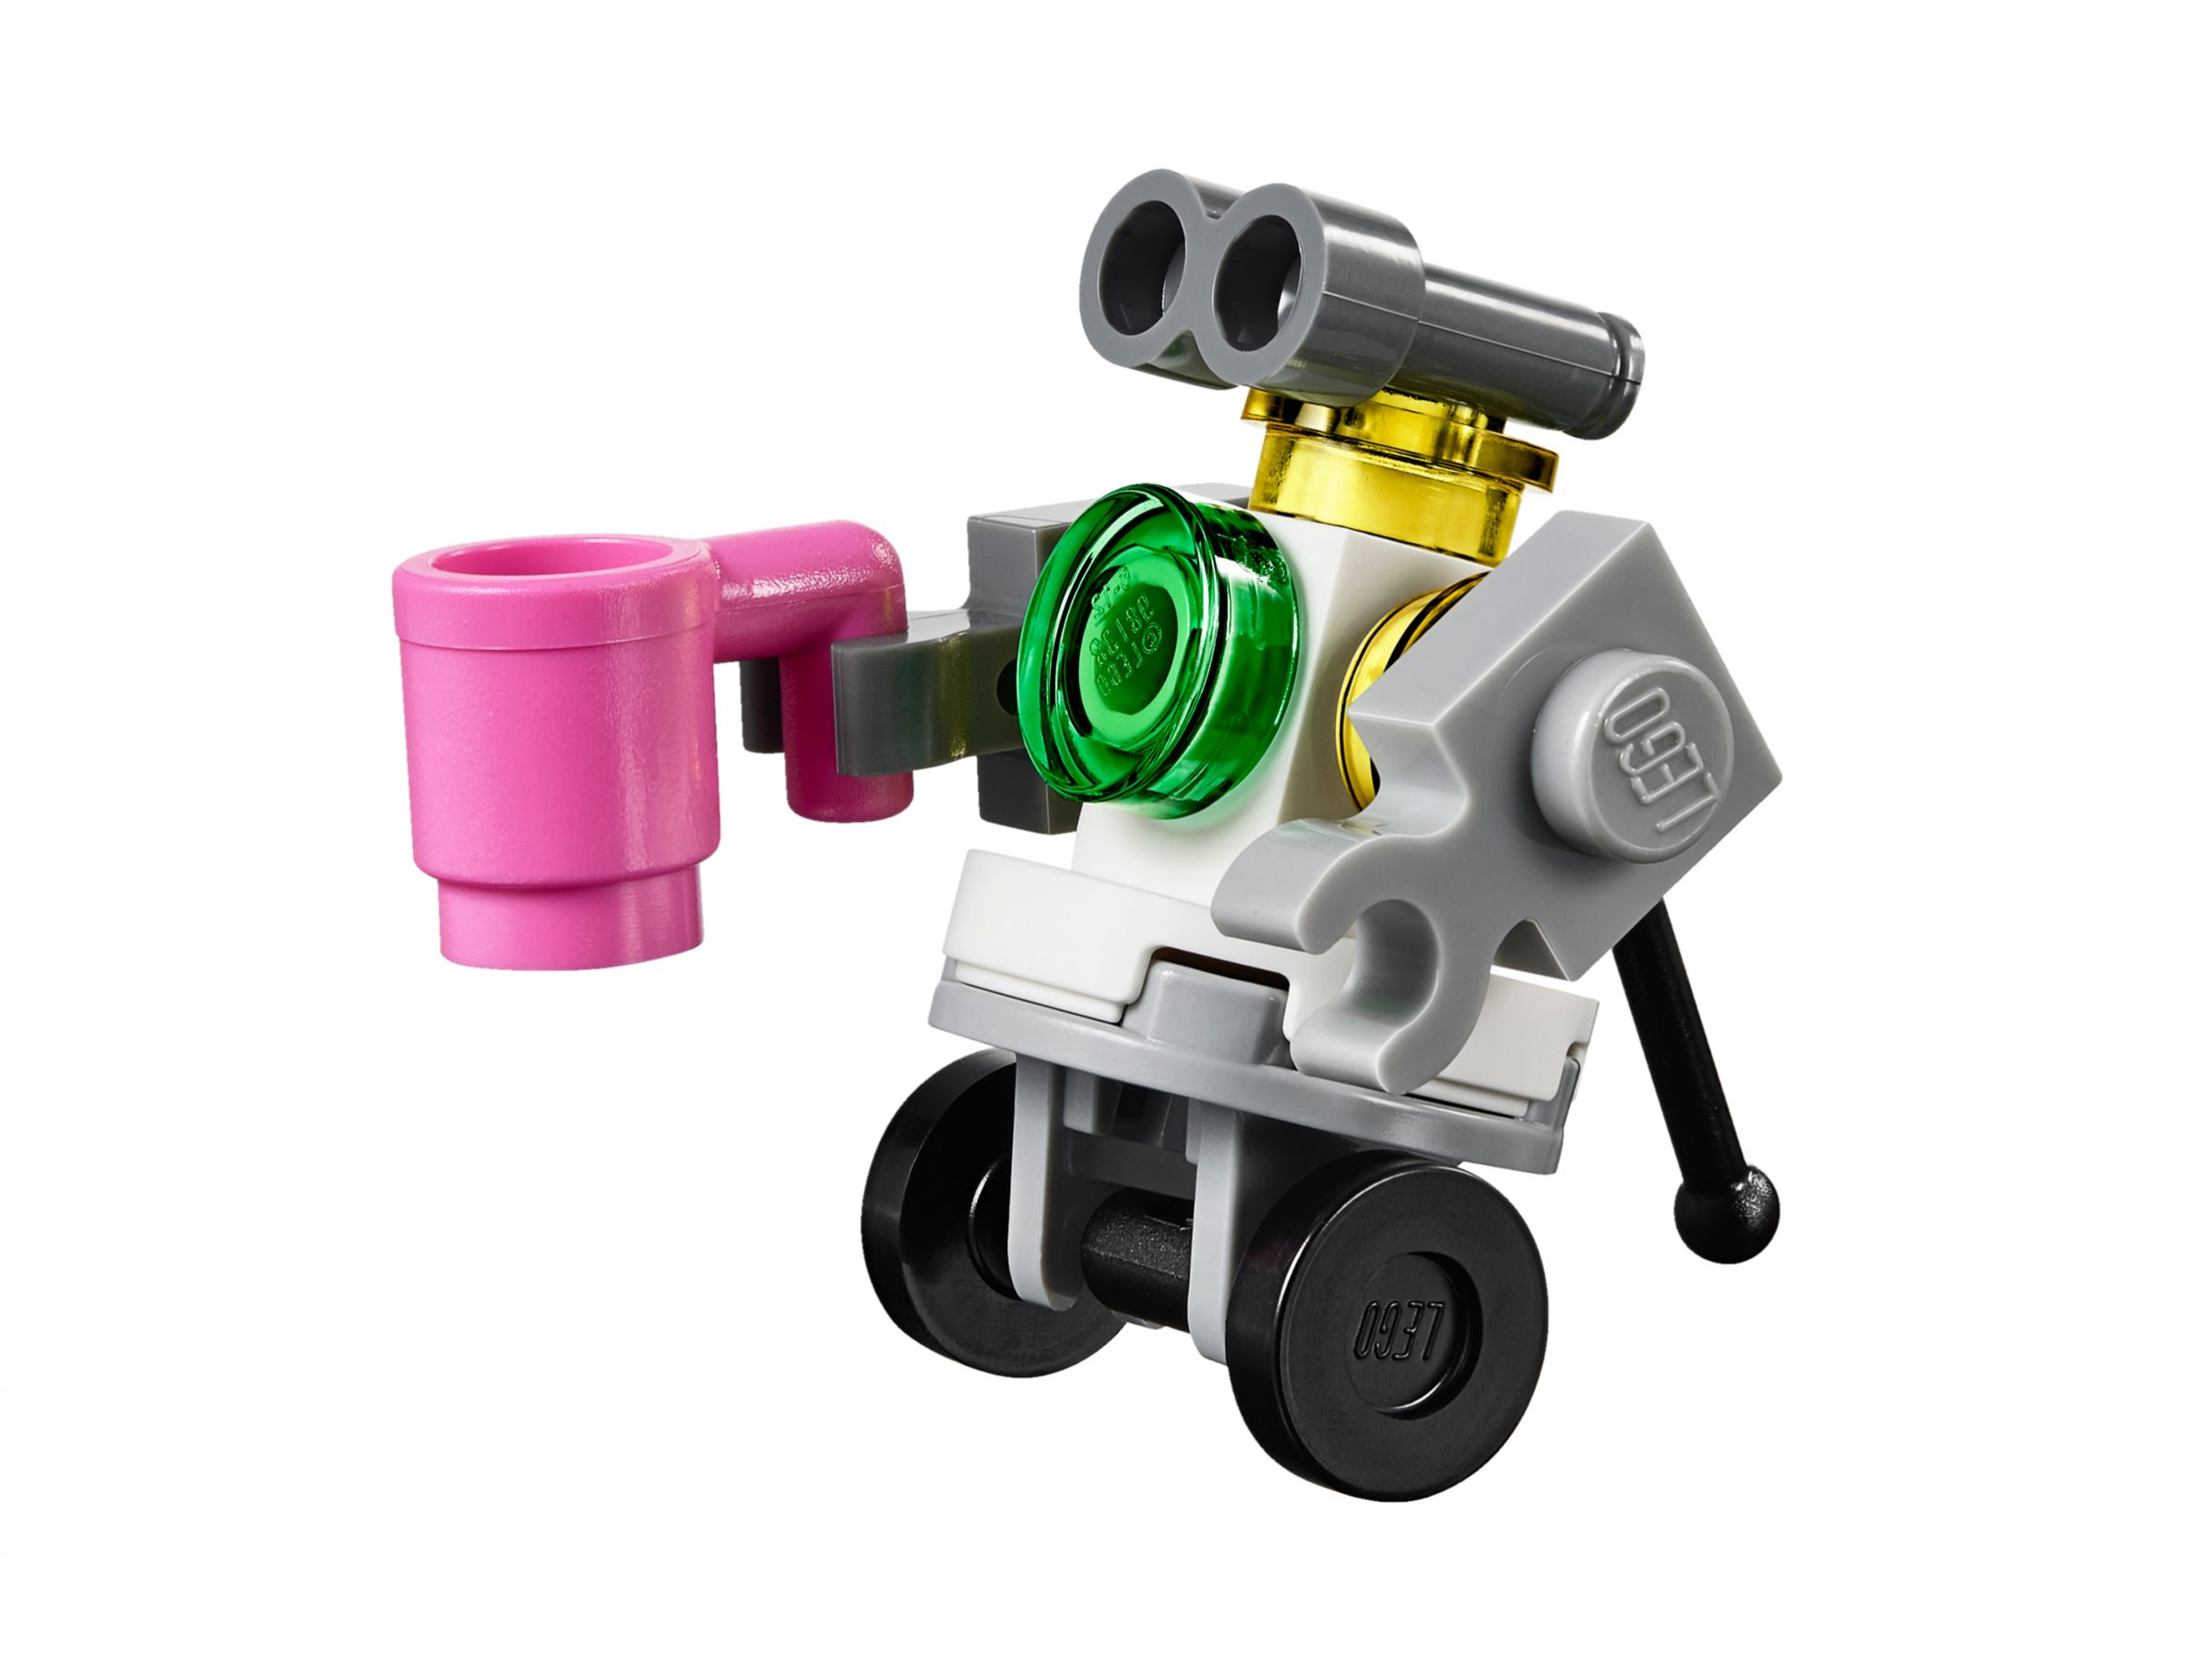 LEGO Friends 41116 Olivias Expeditionsauto LEGO_41116_alt7.jpg